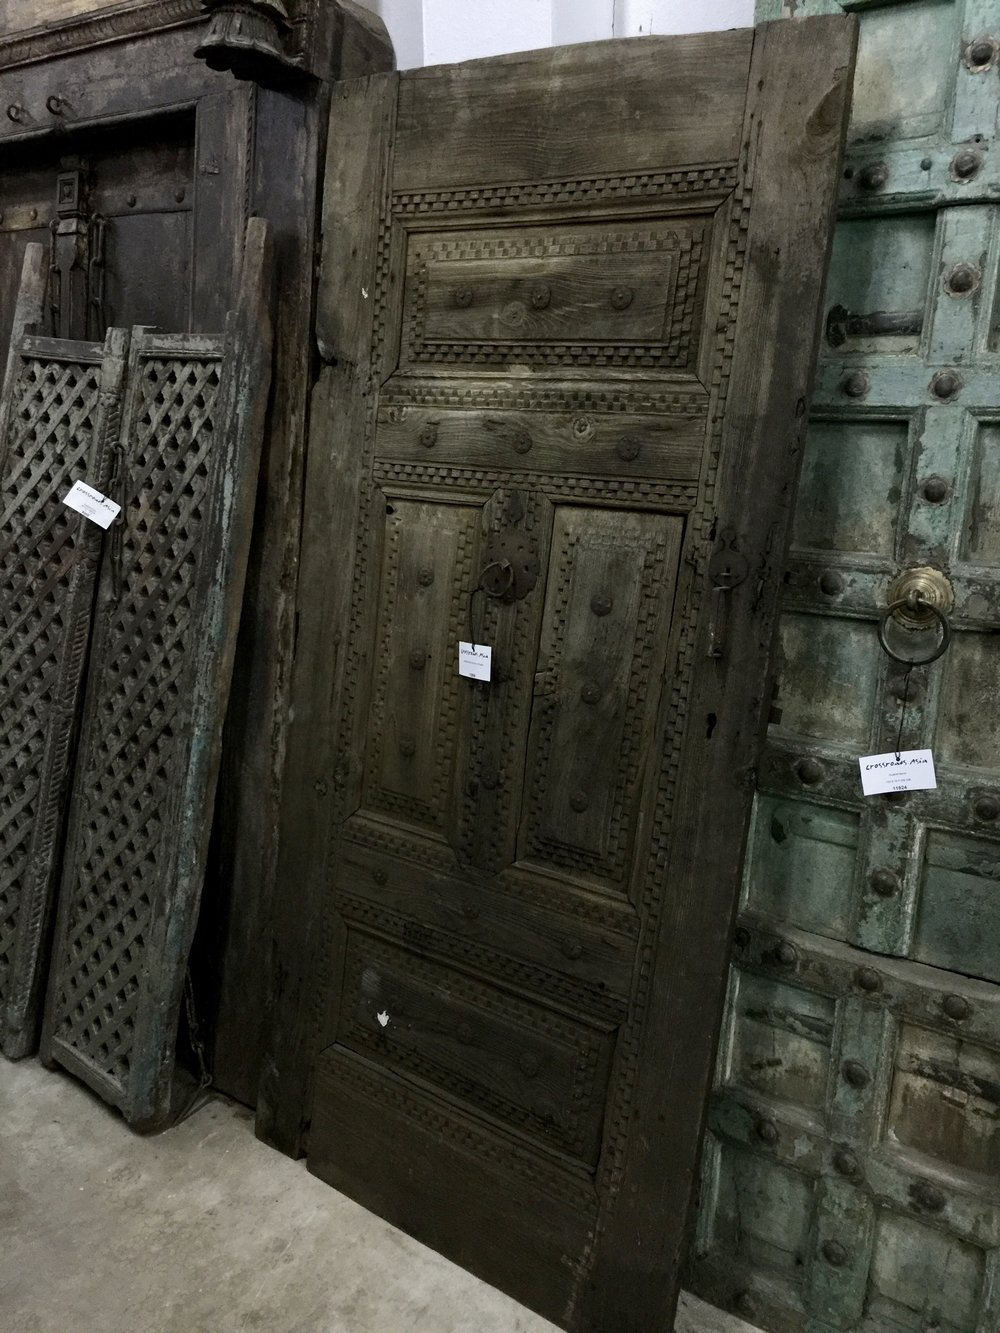 Anatolian/Black Sea Door